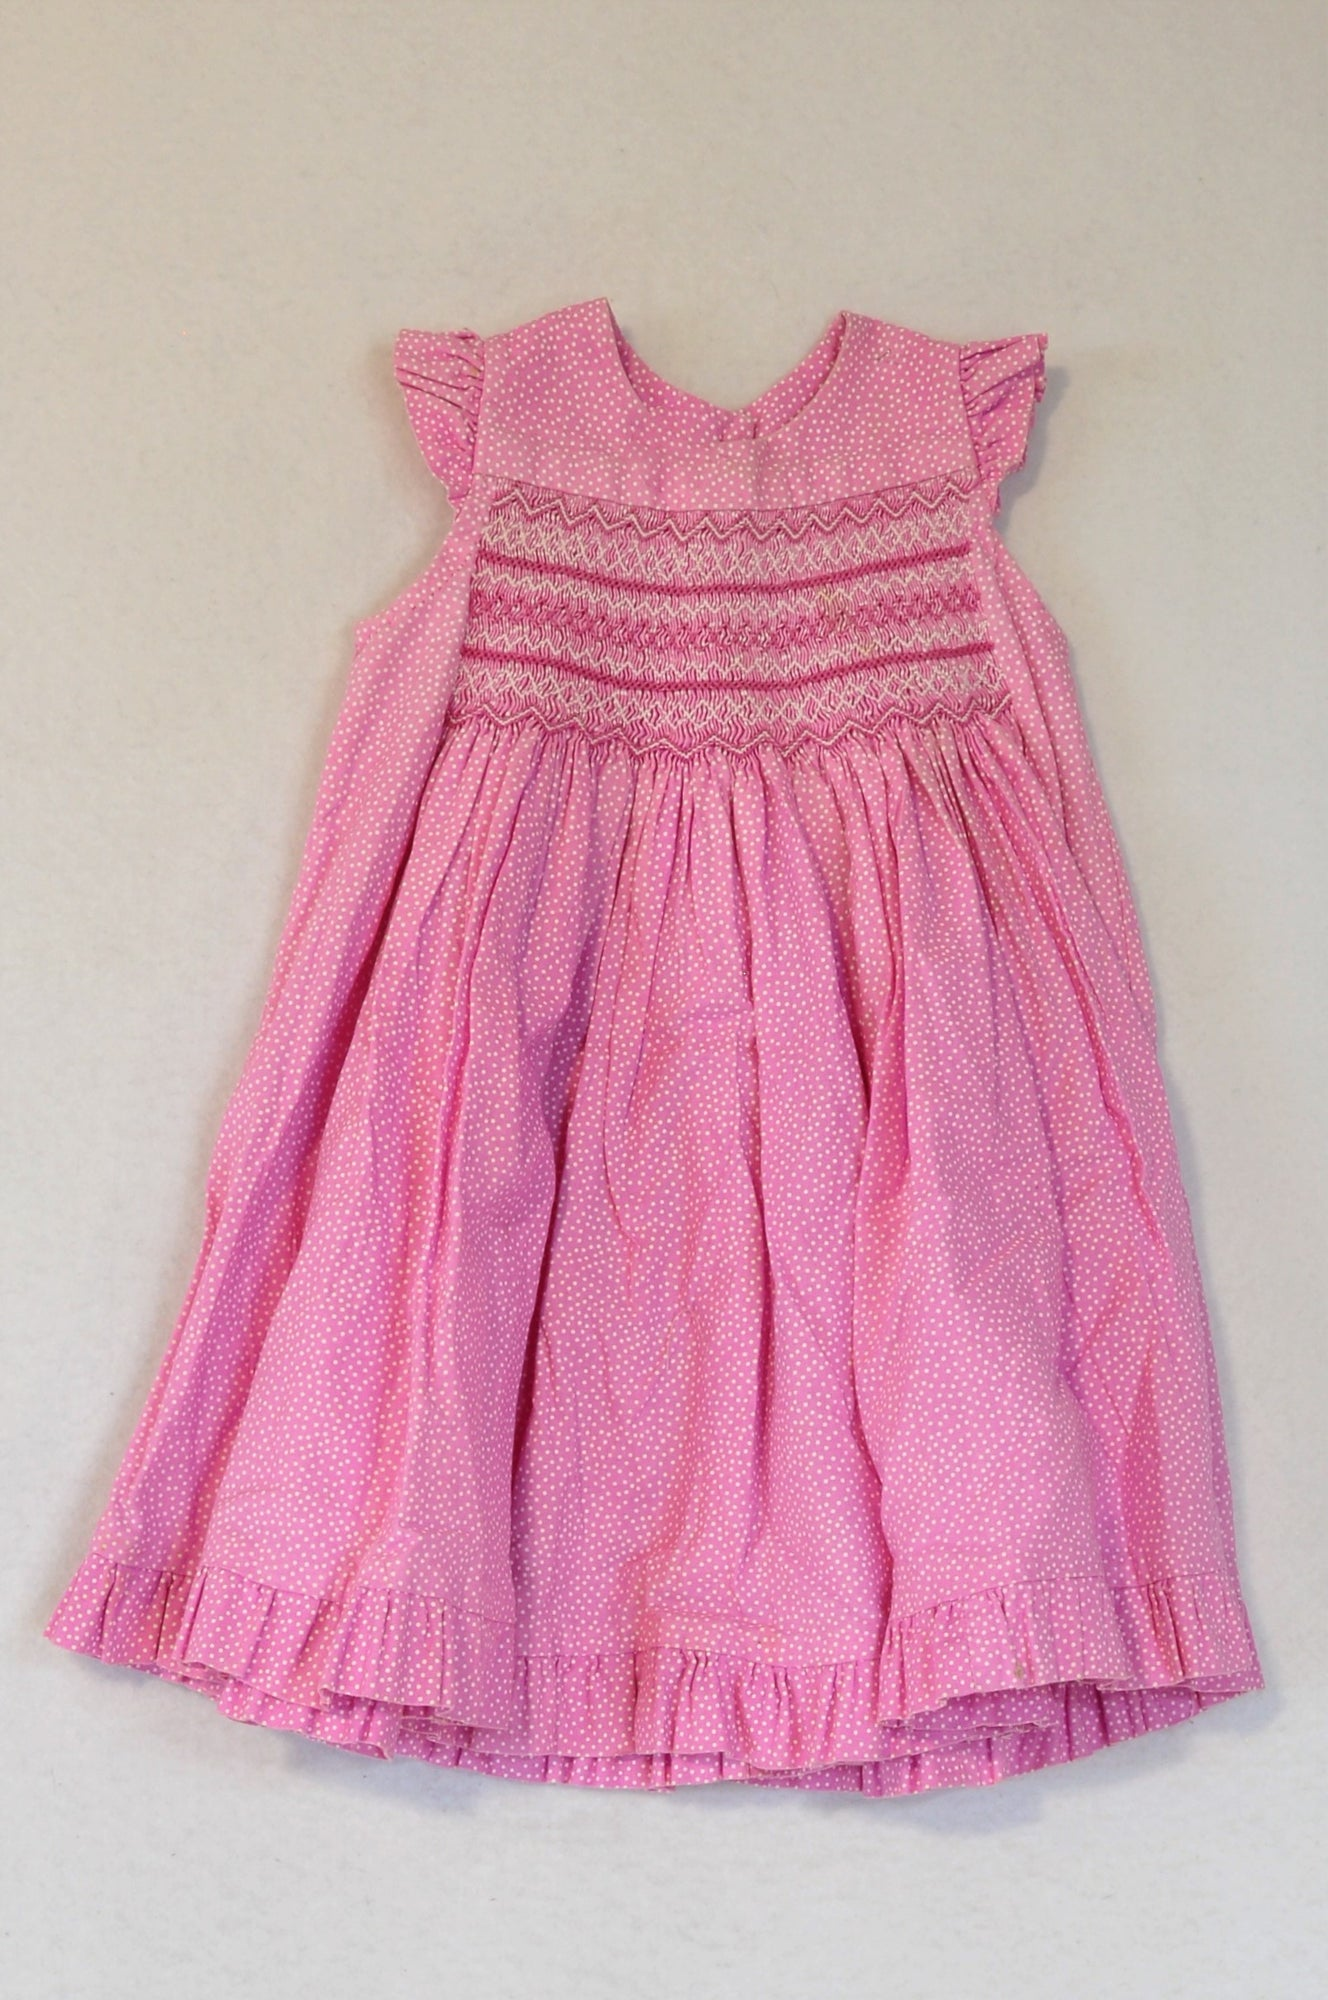 Unbranded Pink Dotty Smock Dress Girls 1-2 years